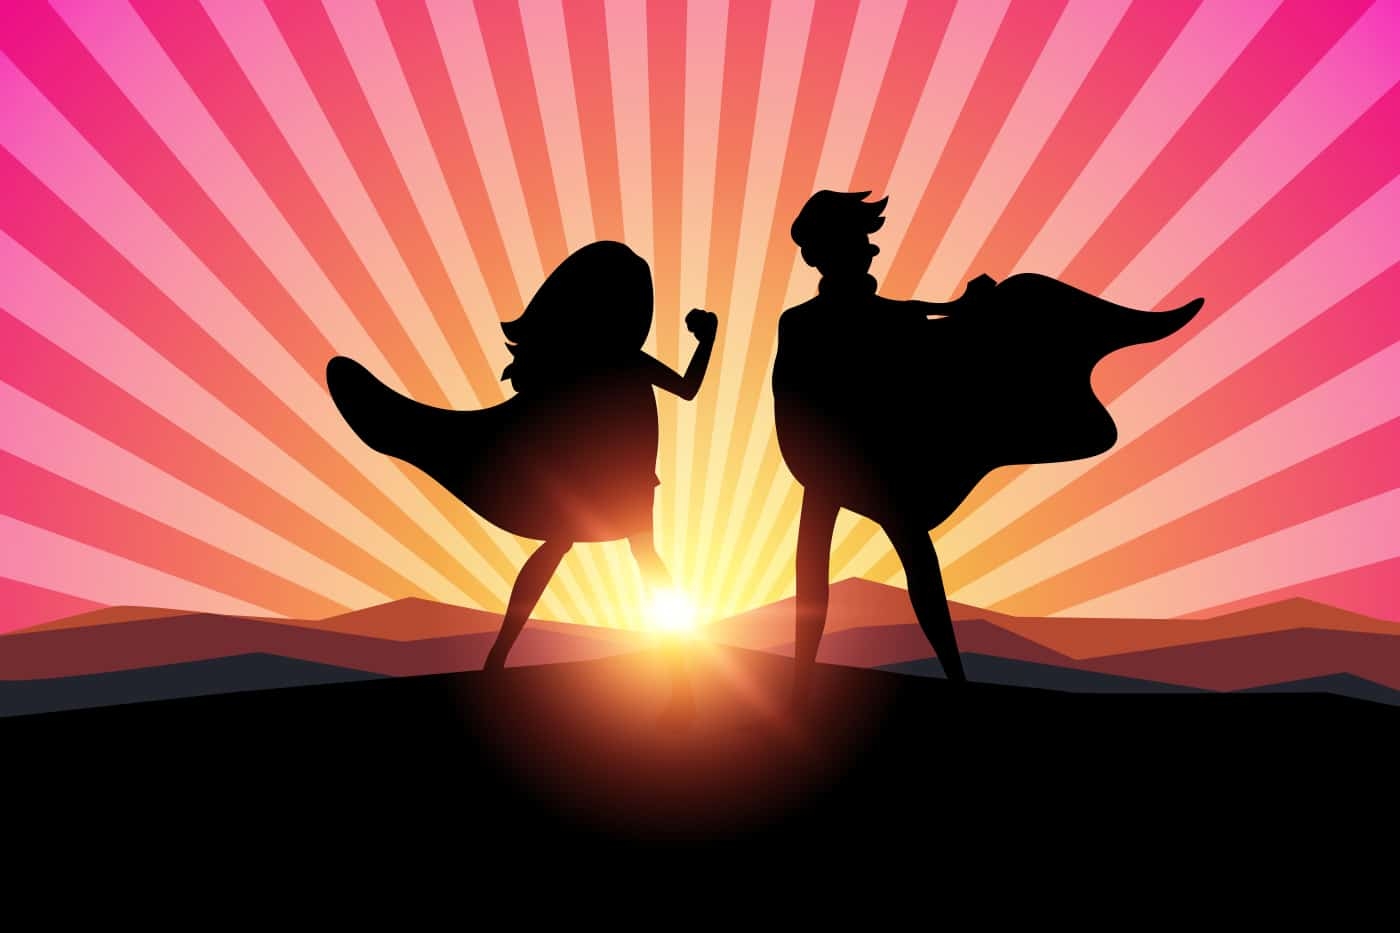 Cartoon silhuettes of female and male superheroes in sunset